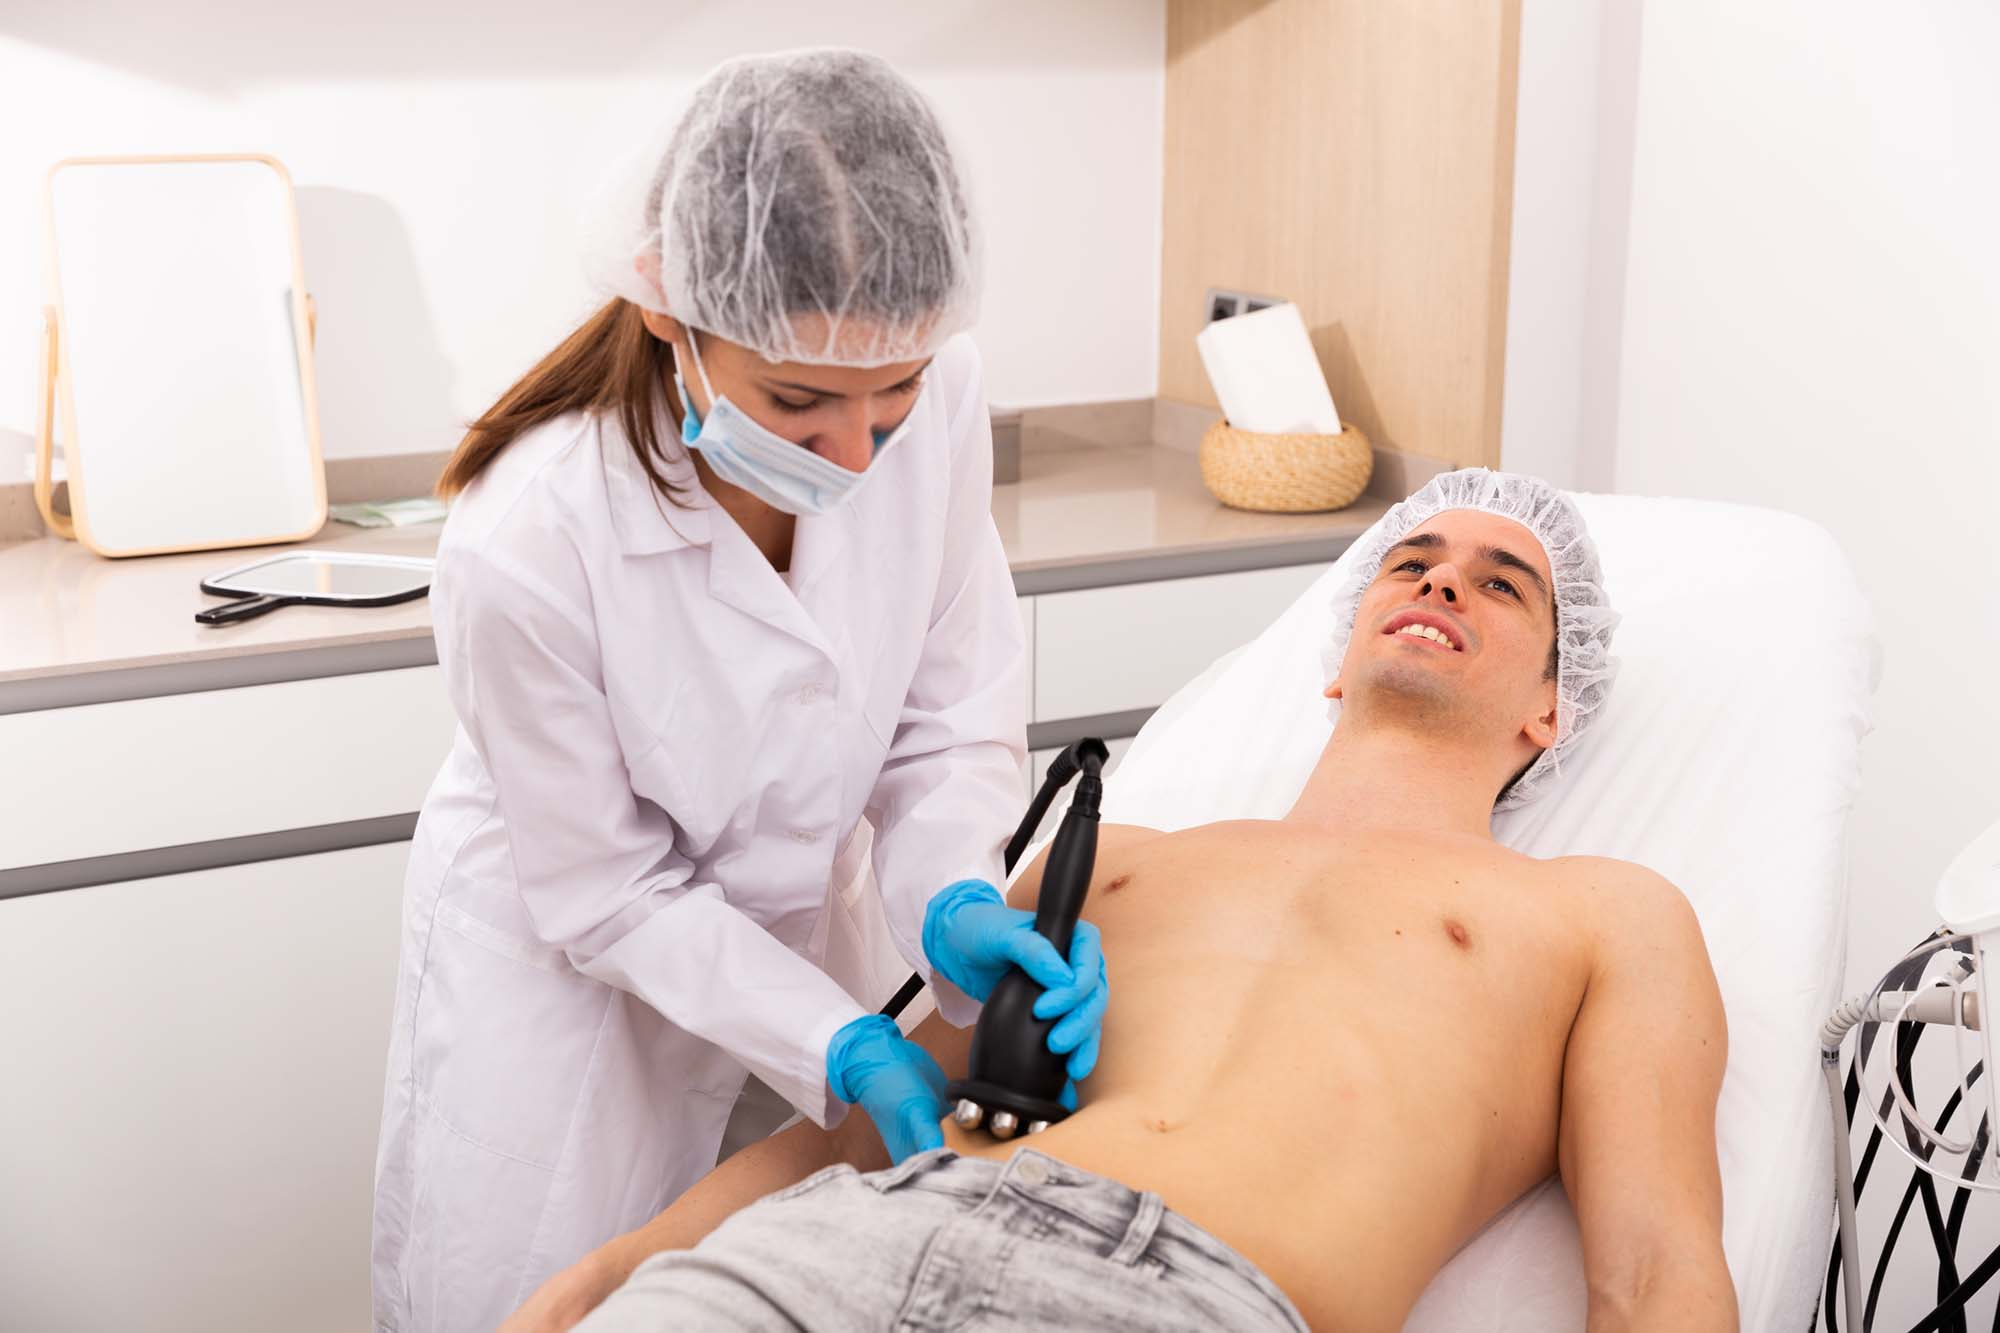 Focused ultrasound body contouring